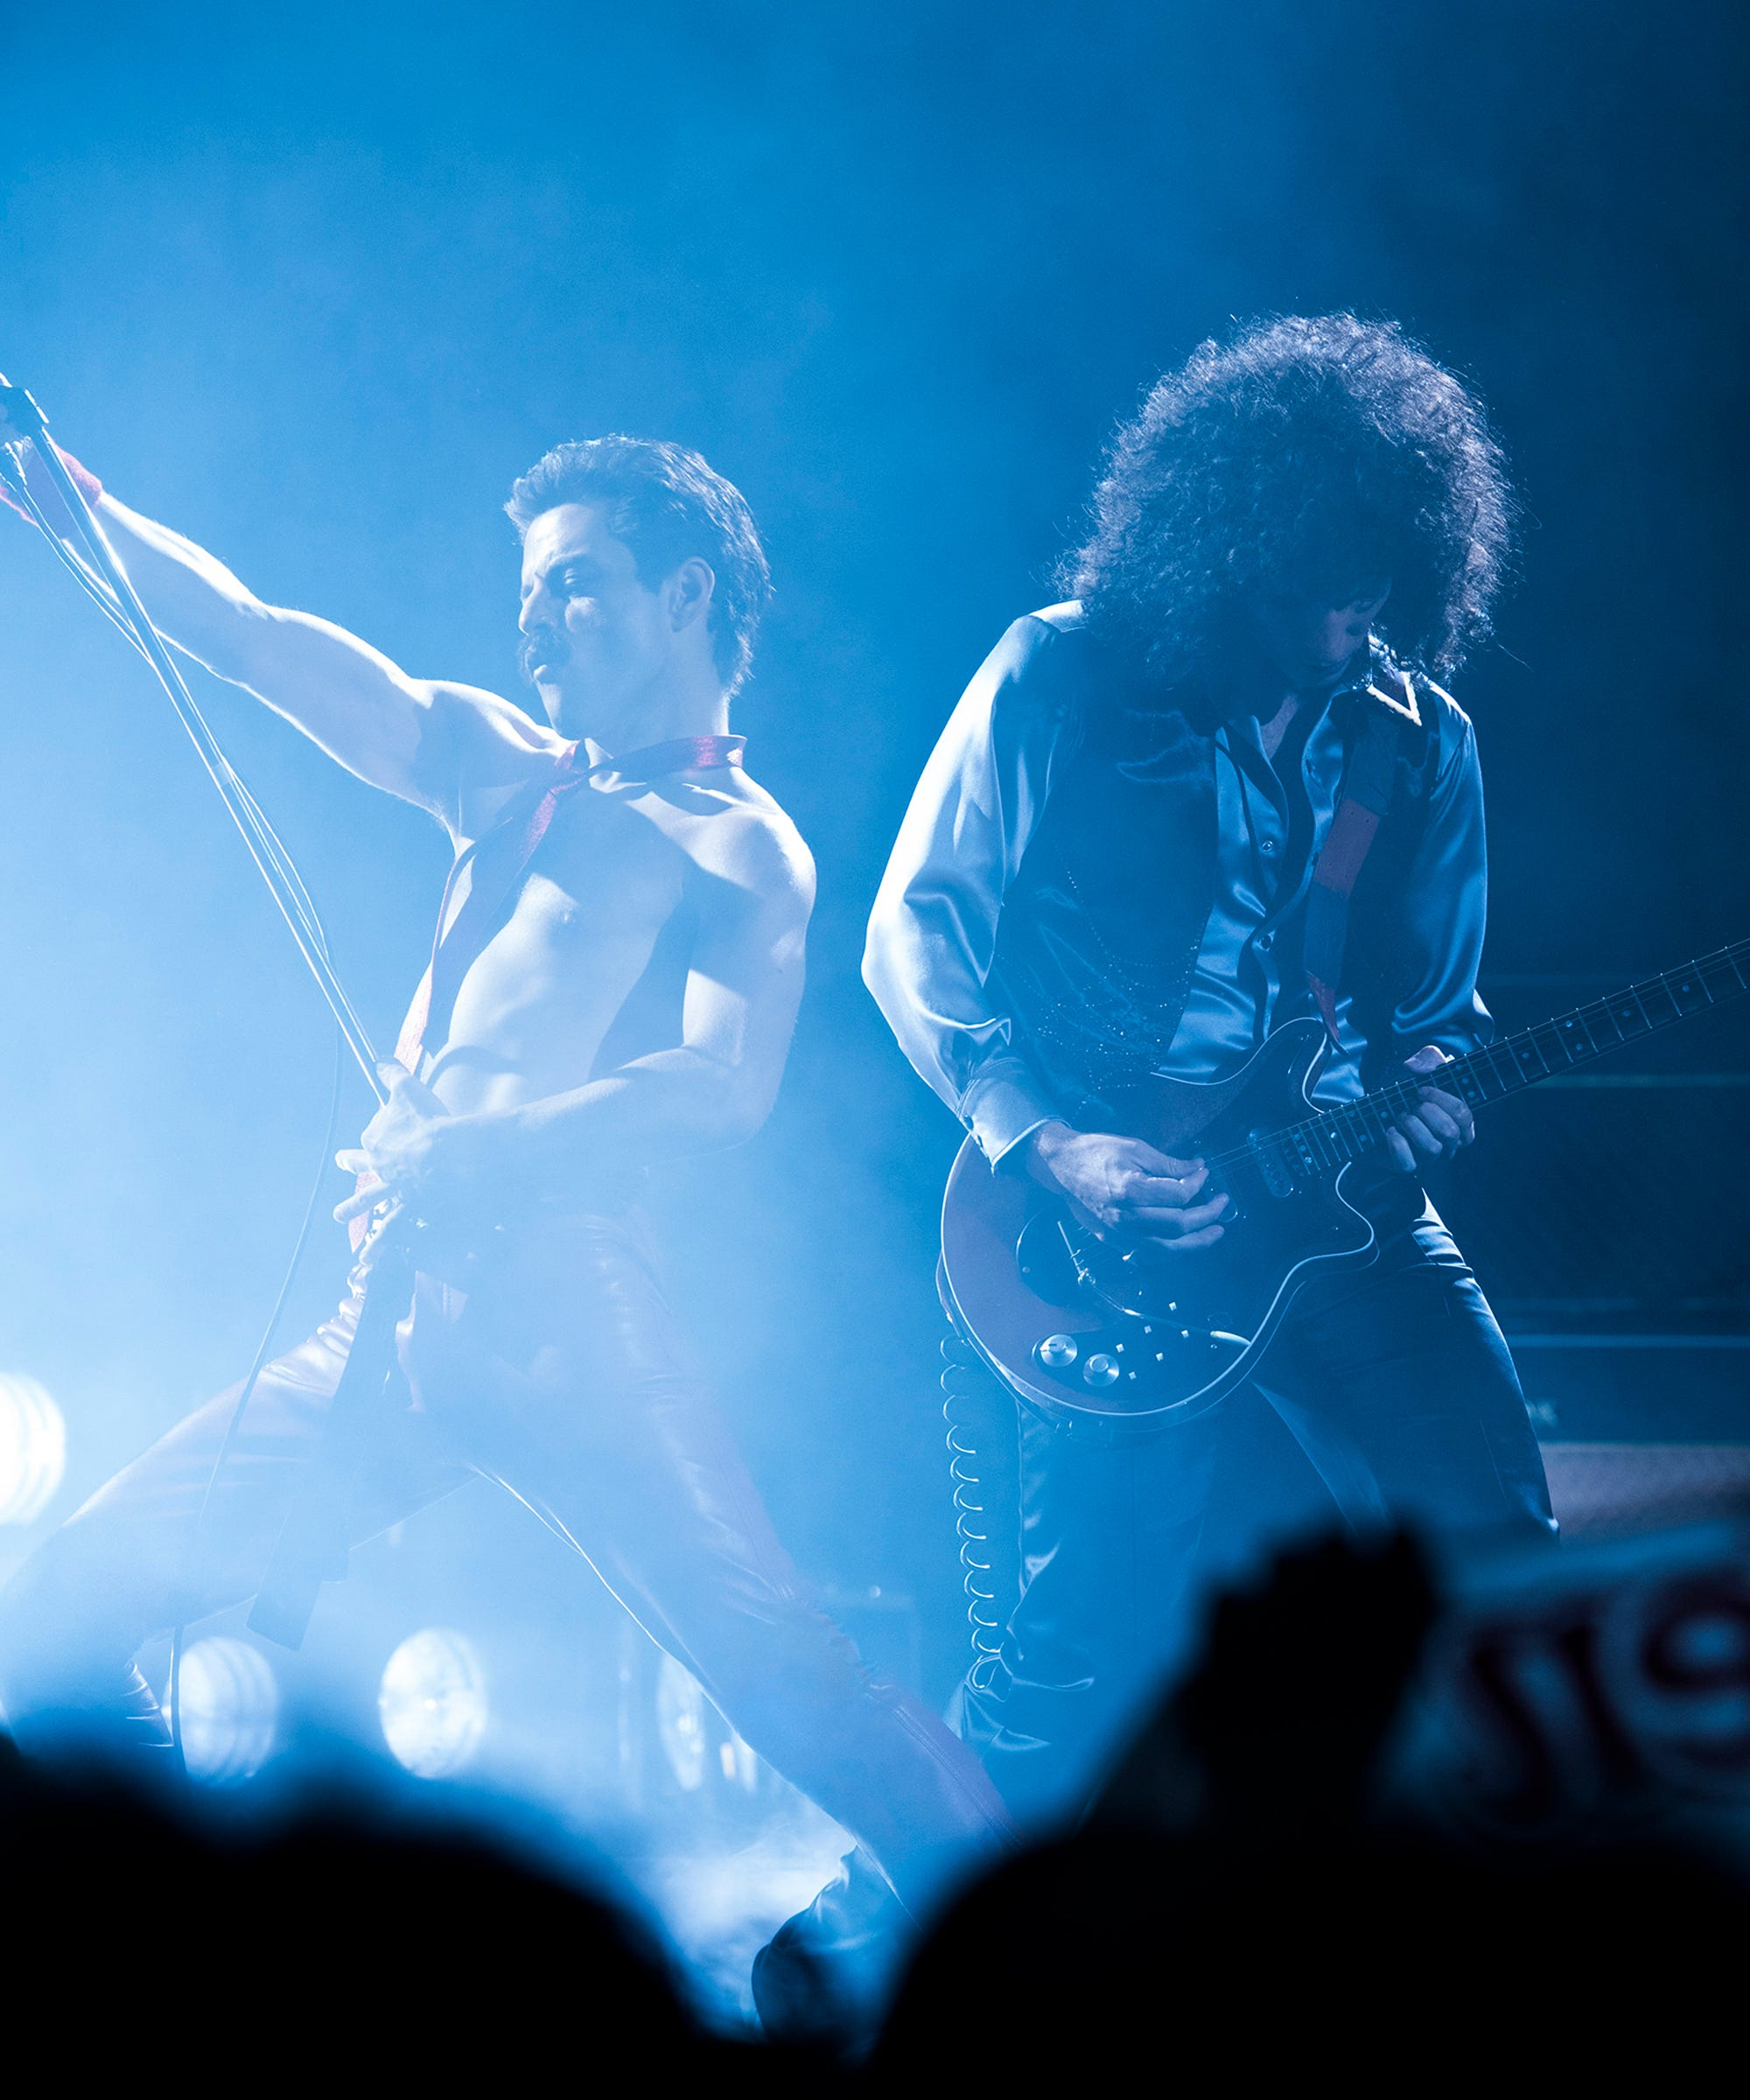 68095ae18d Bohemian Rhapsody Fact Vs Fiction  What You Should Know